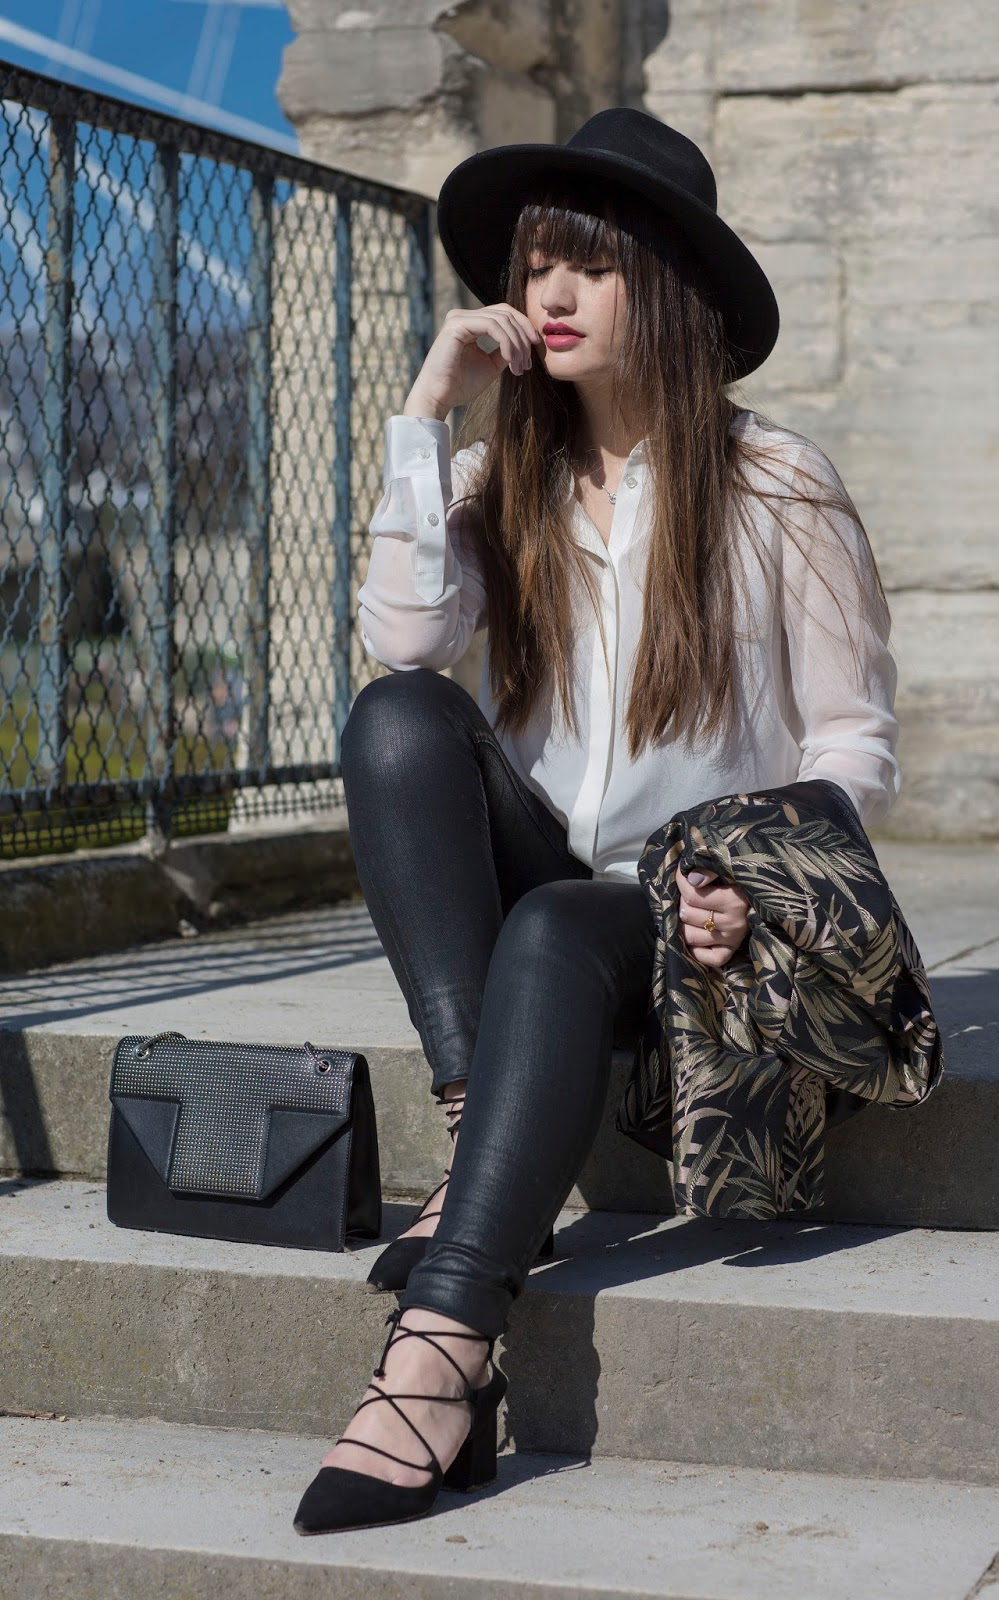 meet me in paree, blogger, fashion, look, style, parisian, nikita wong, chic style, fashion photography